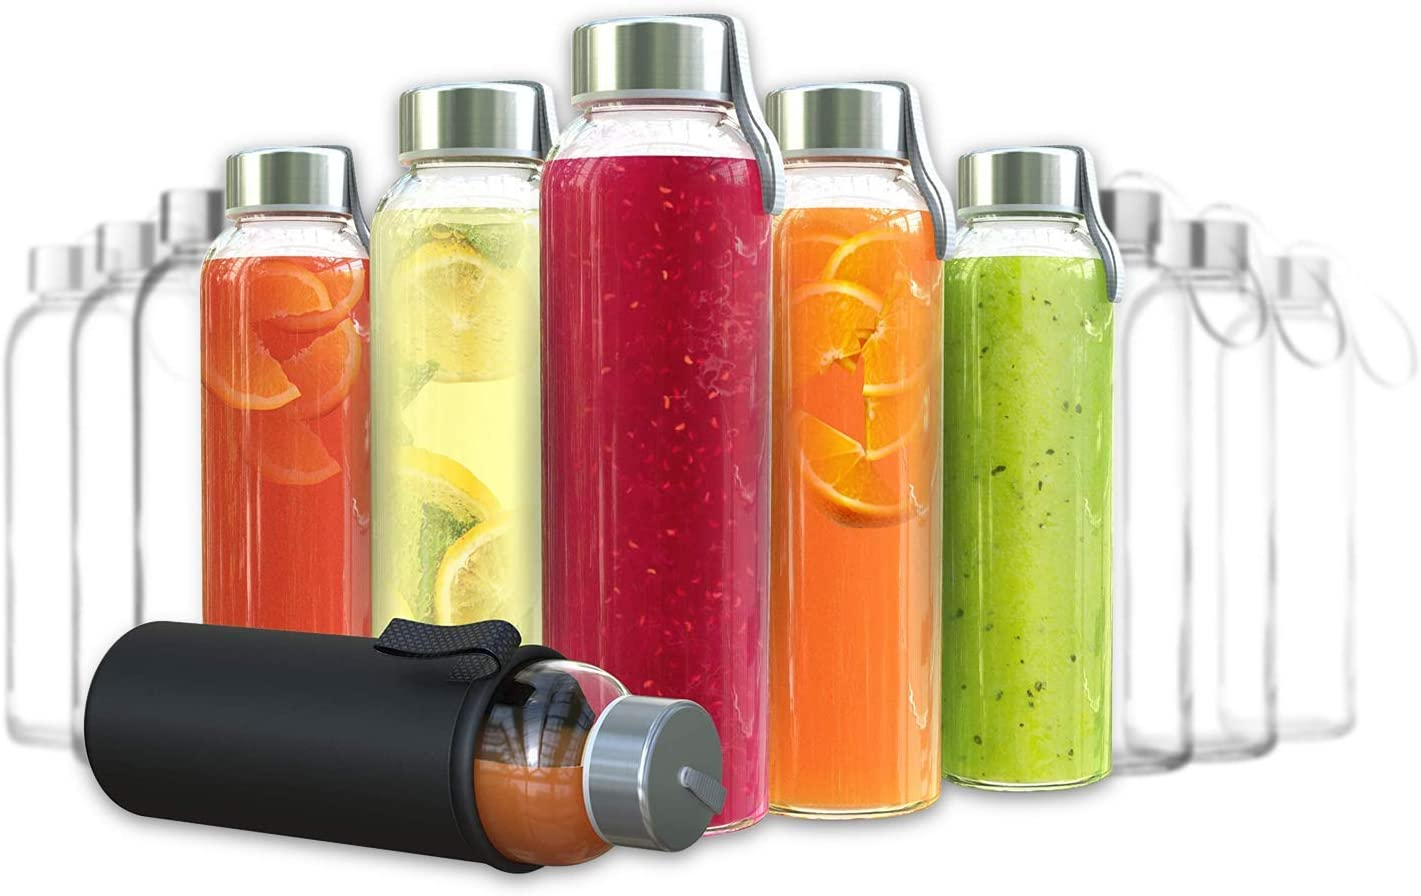 Chef's Star Glass Water Bottles - 12 Pack of Glass Bottles with Caps - 18 oz Juice Bottles- Protection Sleeve Included - Featuring Stainless Steel Leak-Proof Lids with Carrying Strap